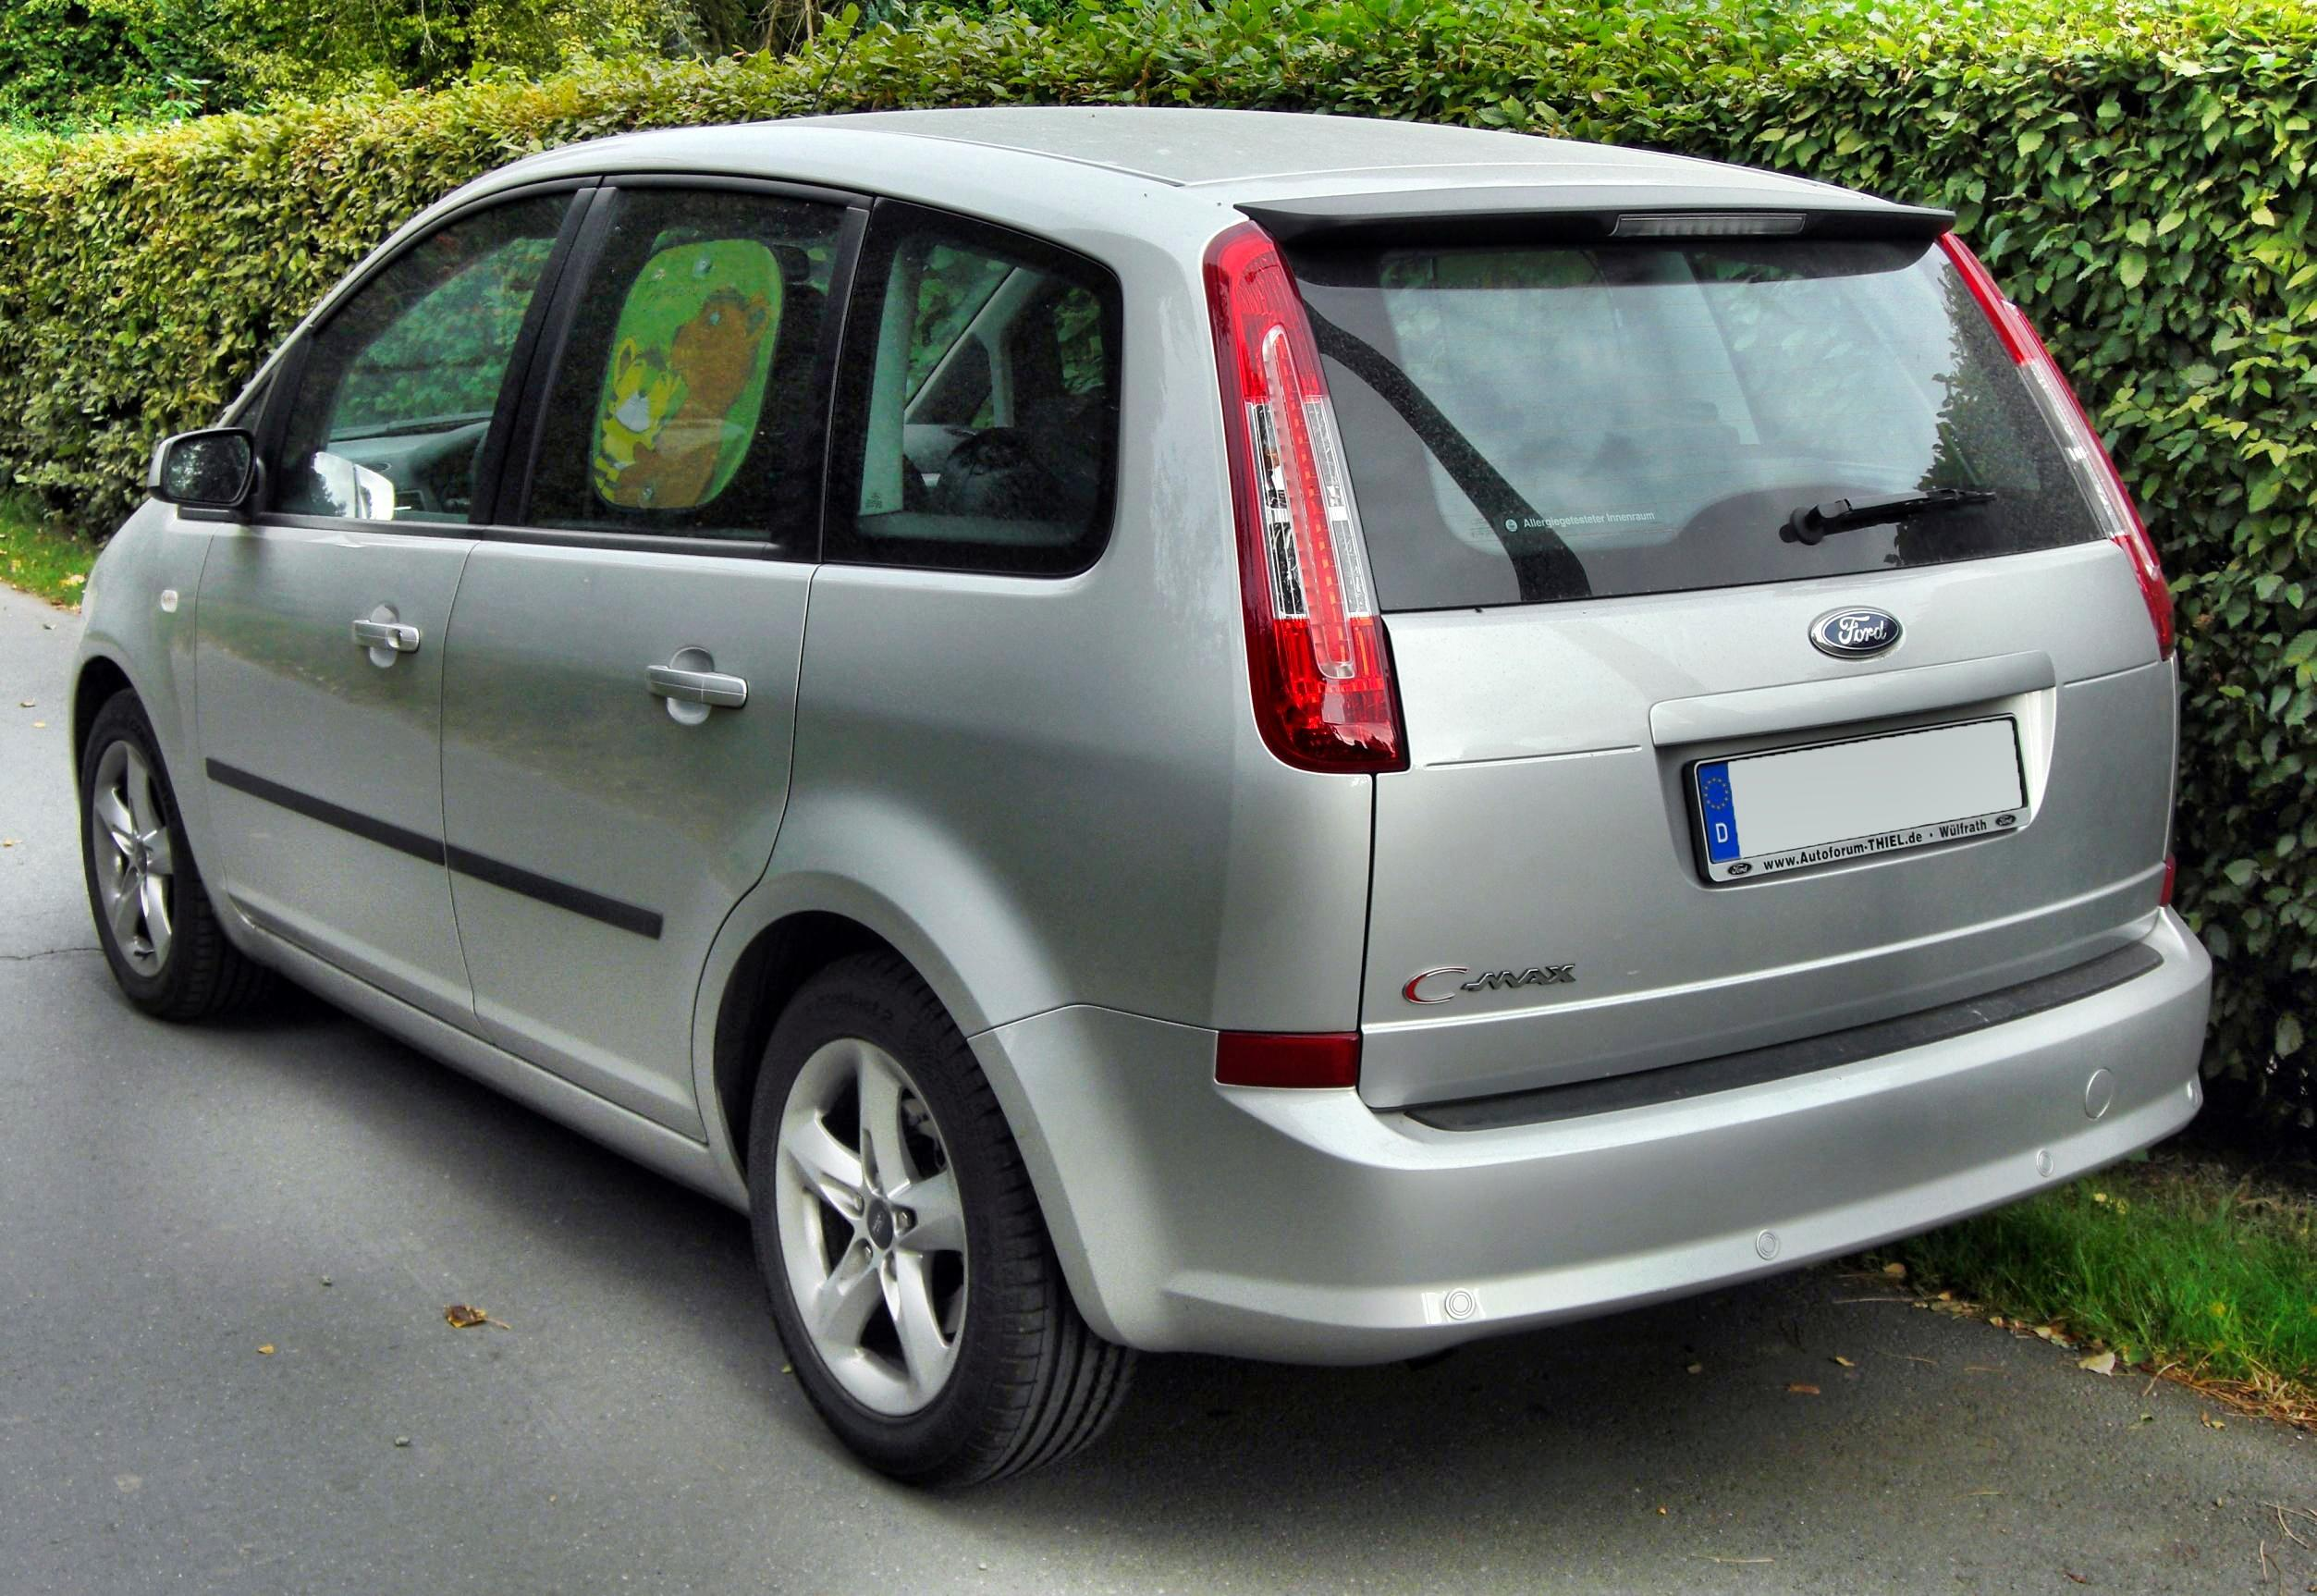 file ford c max facelift 20090912 rear jpg wikimedia commons. Black Bedroom Furniture Sets. Home Design Ideas